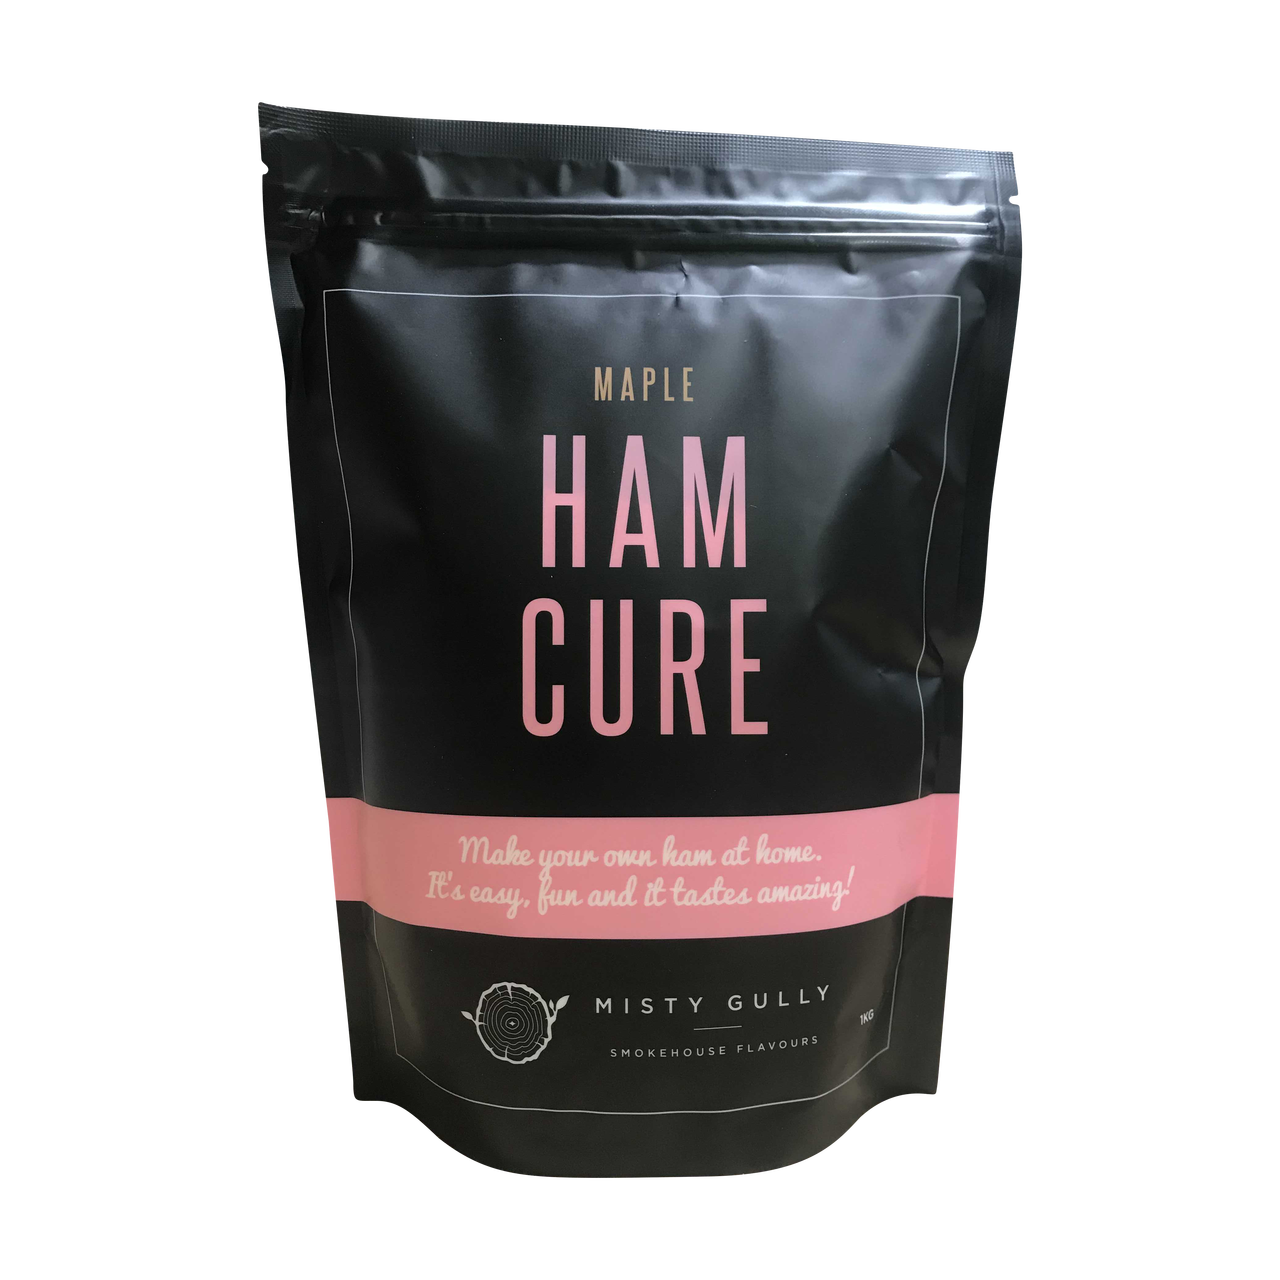 Misty Gully Maple Ham Cure 1kg